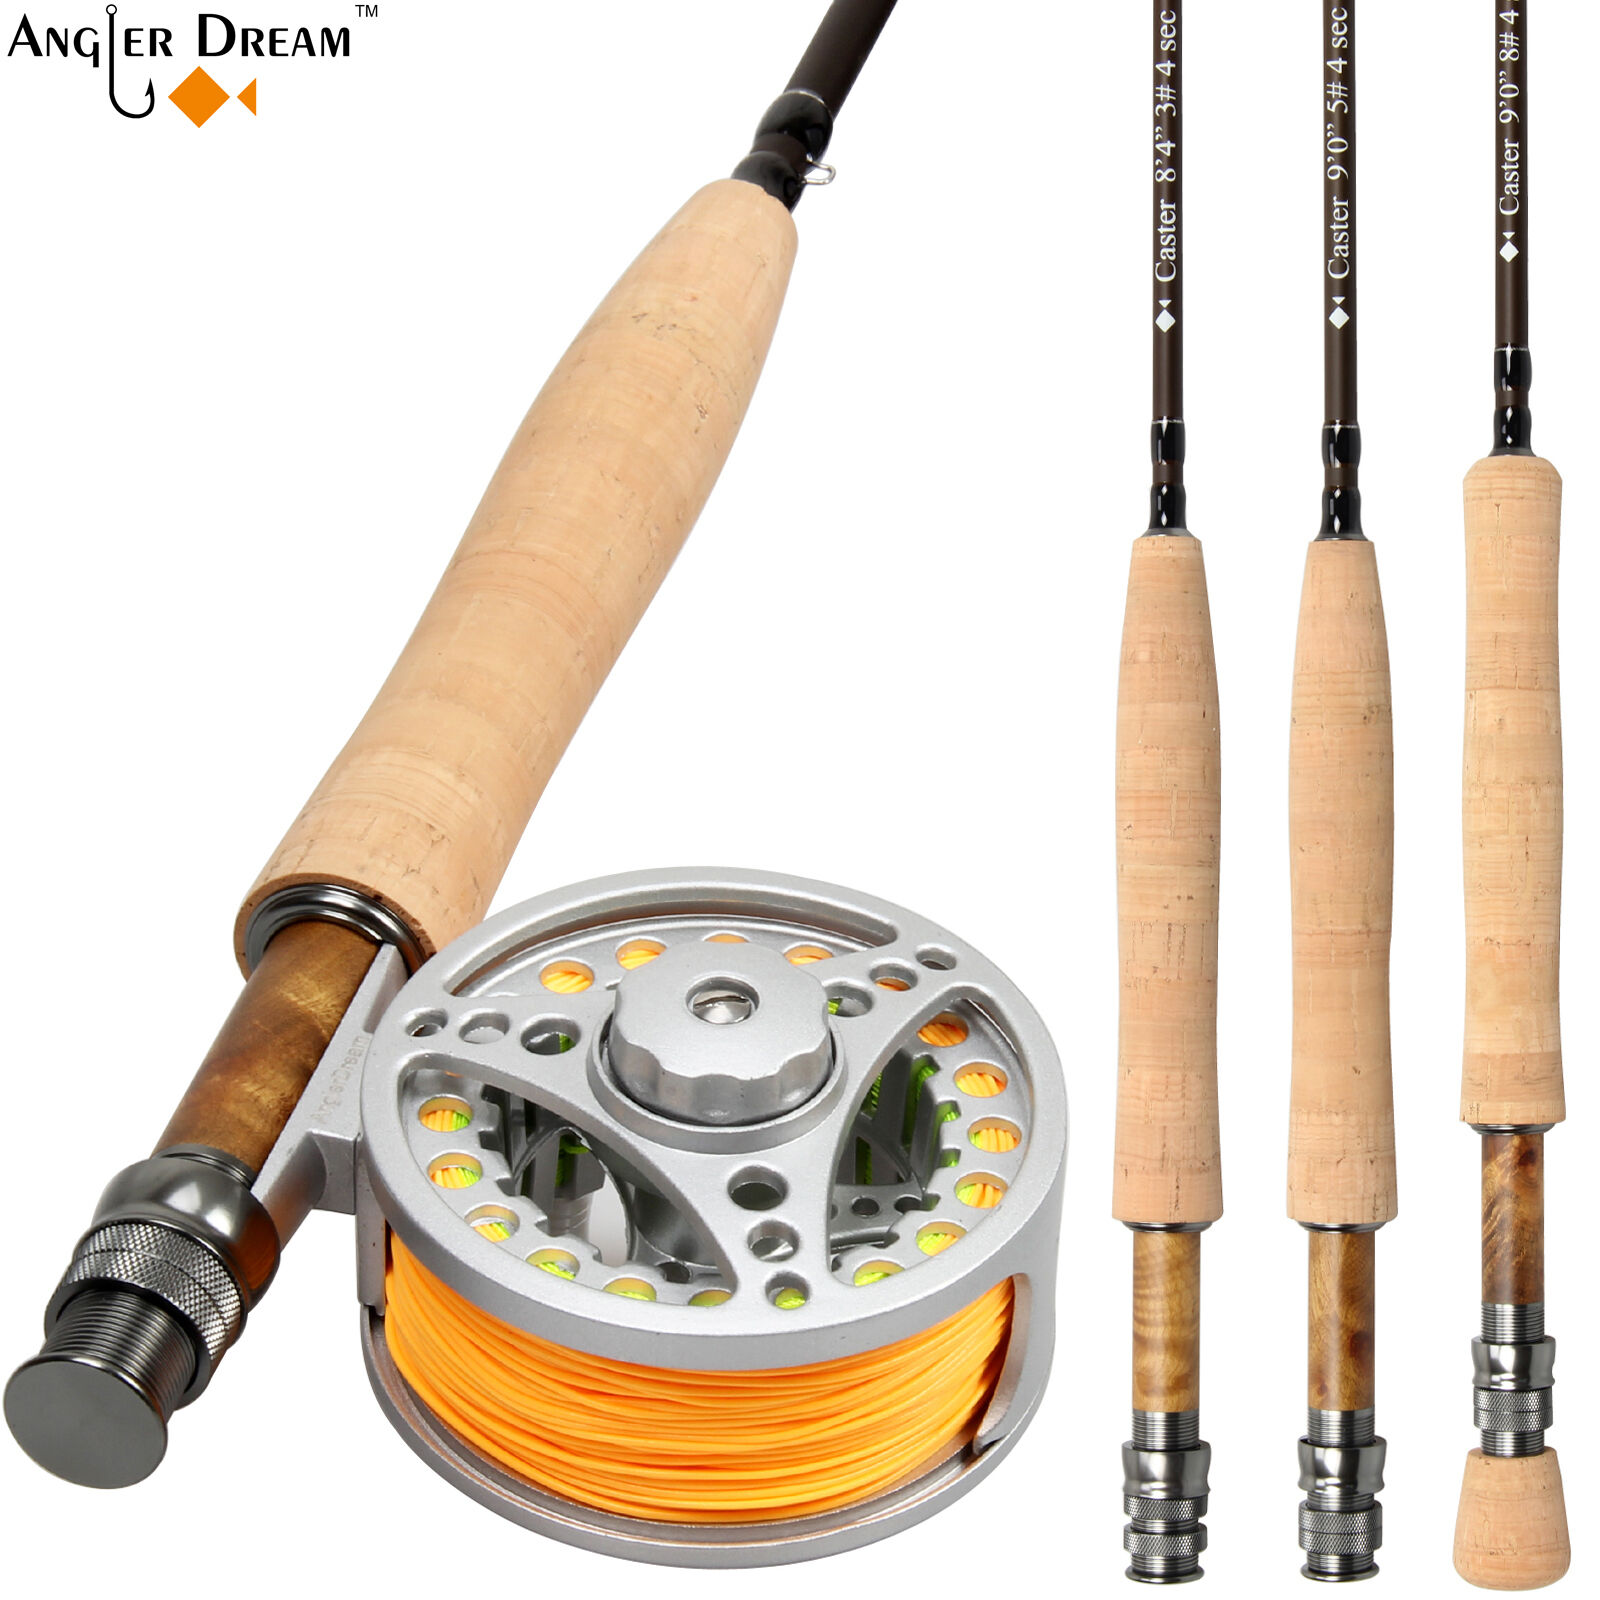 34 56 78WT Fly Rod Combo 9FT Carbon Fly Fishing Rod with Fly Reel  Line